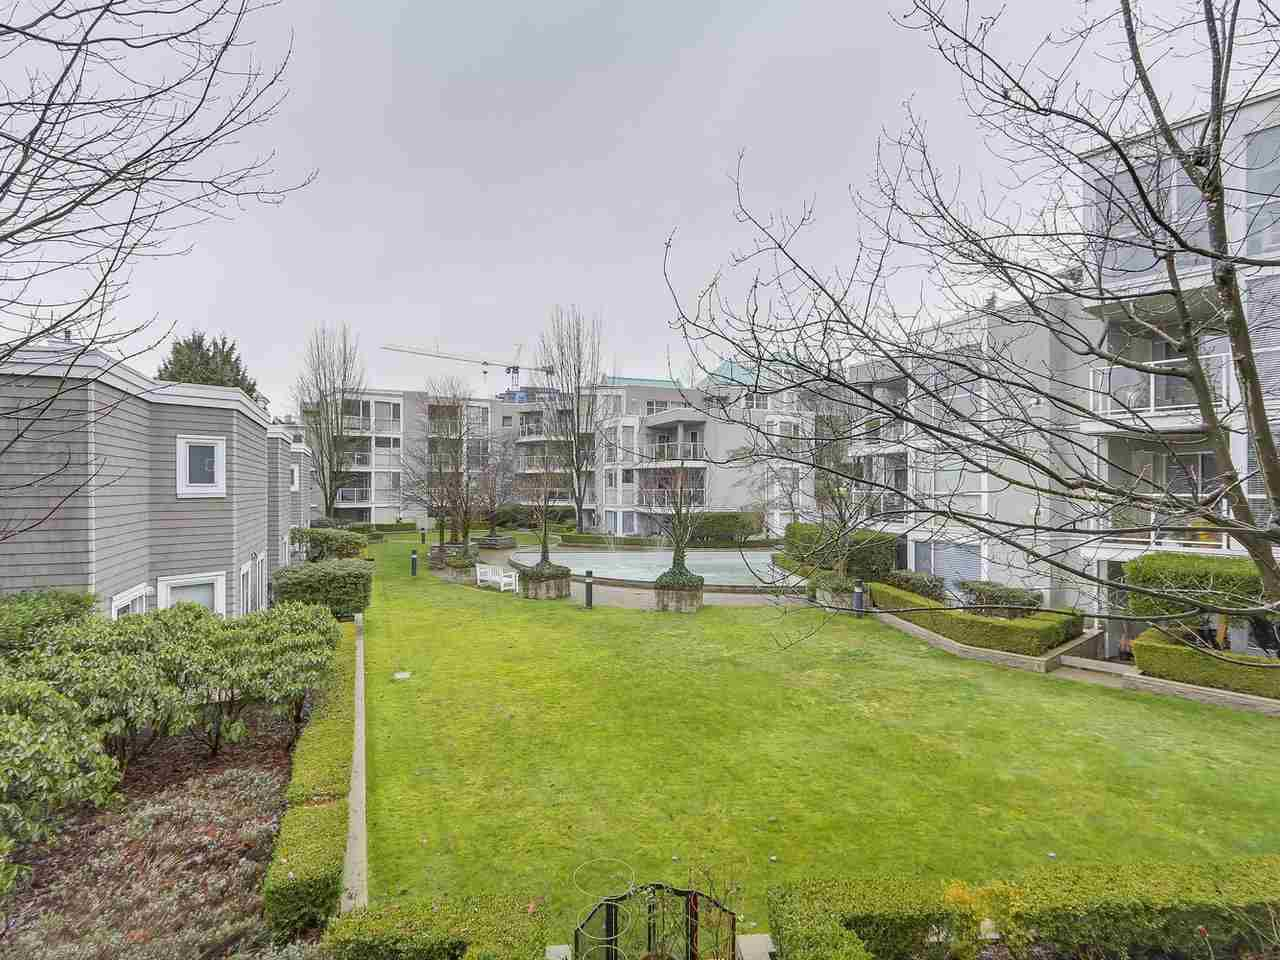 "Main Photo: 207 8450 JELLICOE Street in Vancouver: Fraserview VE Condo for sale in ""Boardwalk"" (Vancouver East)  : MLS®# R2239090"